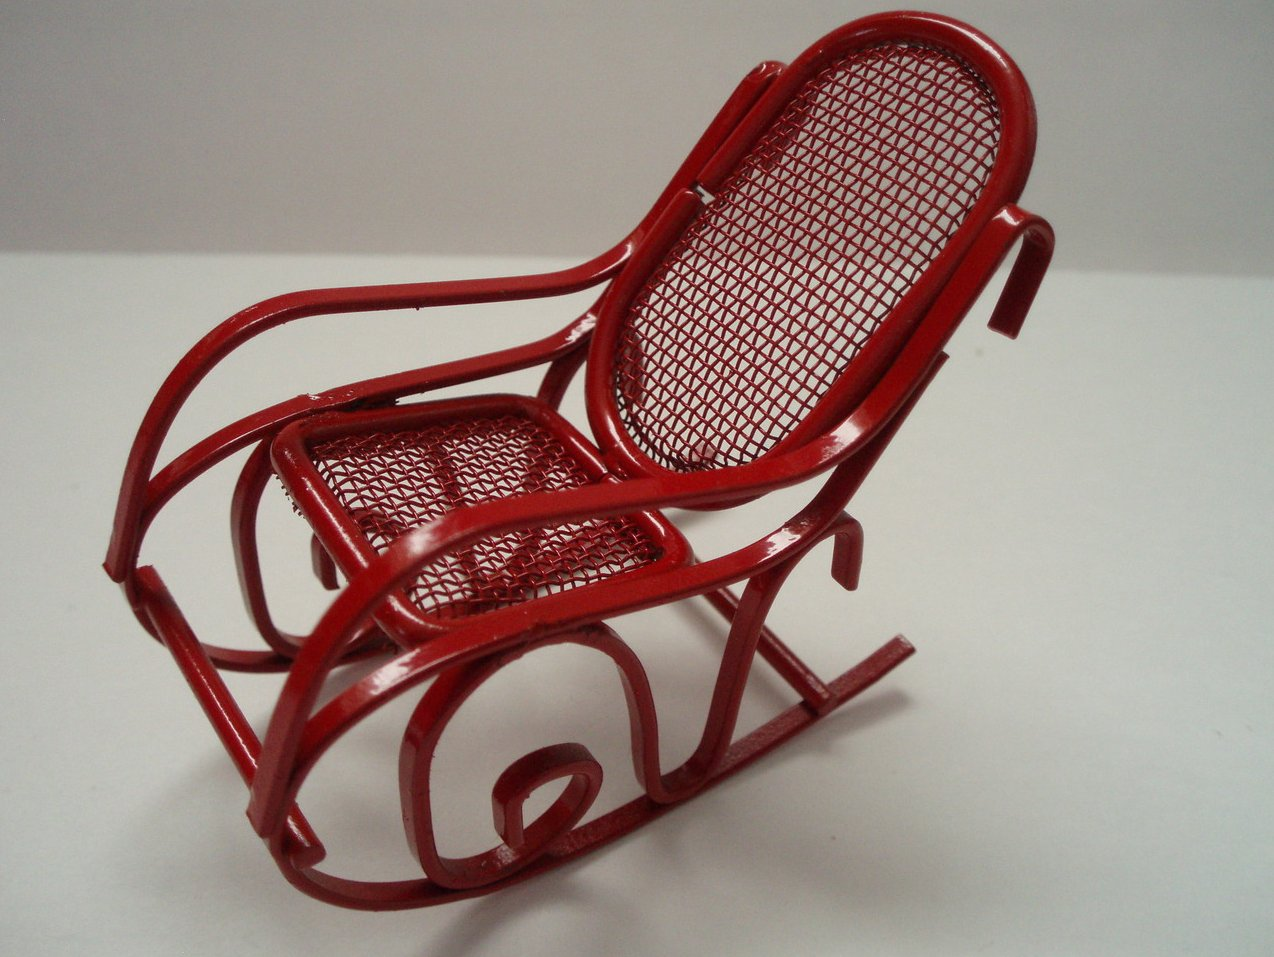 Dollhouse Miniature Childs Red Rocking Chair